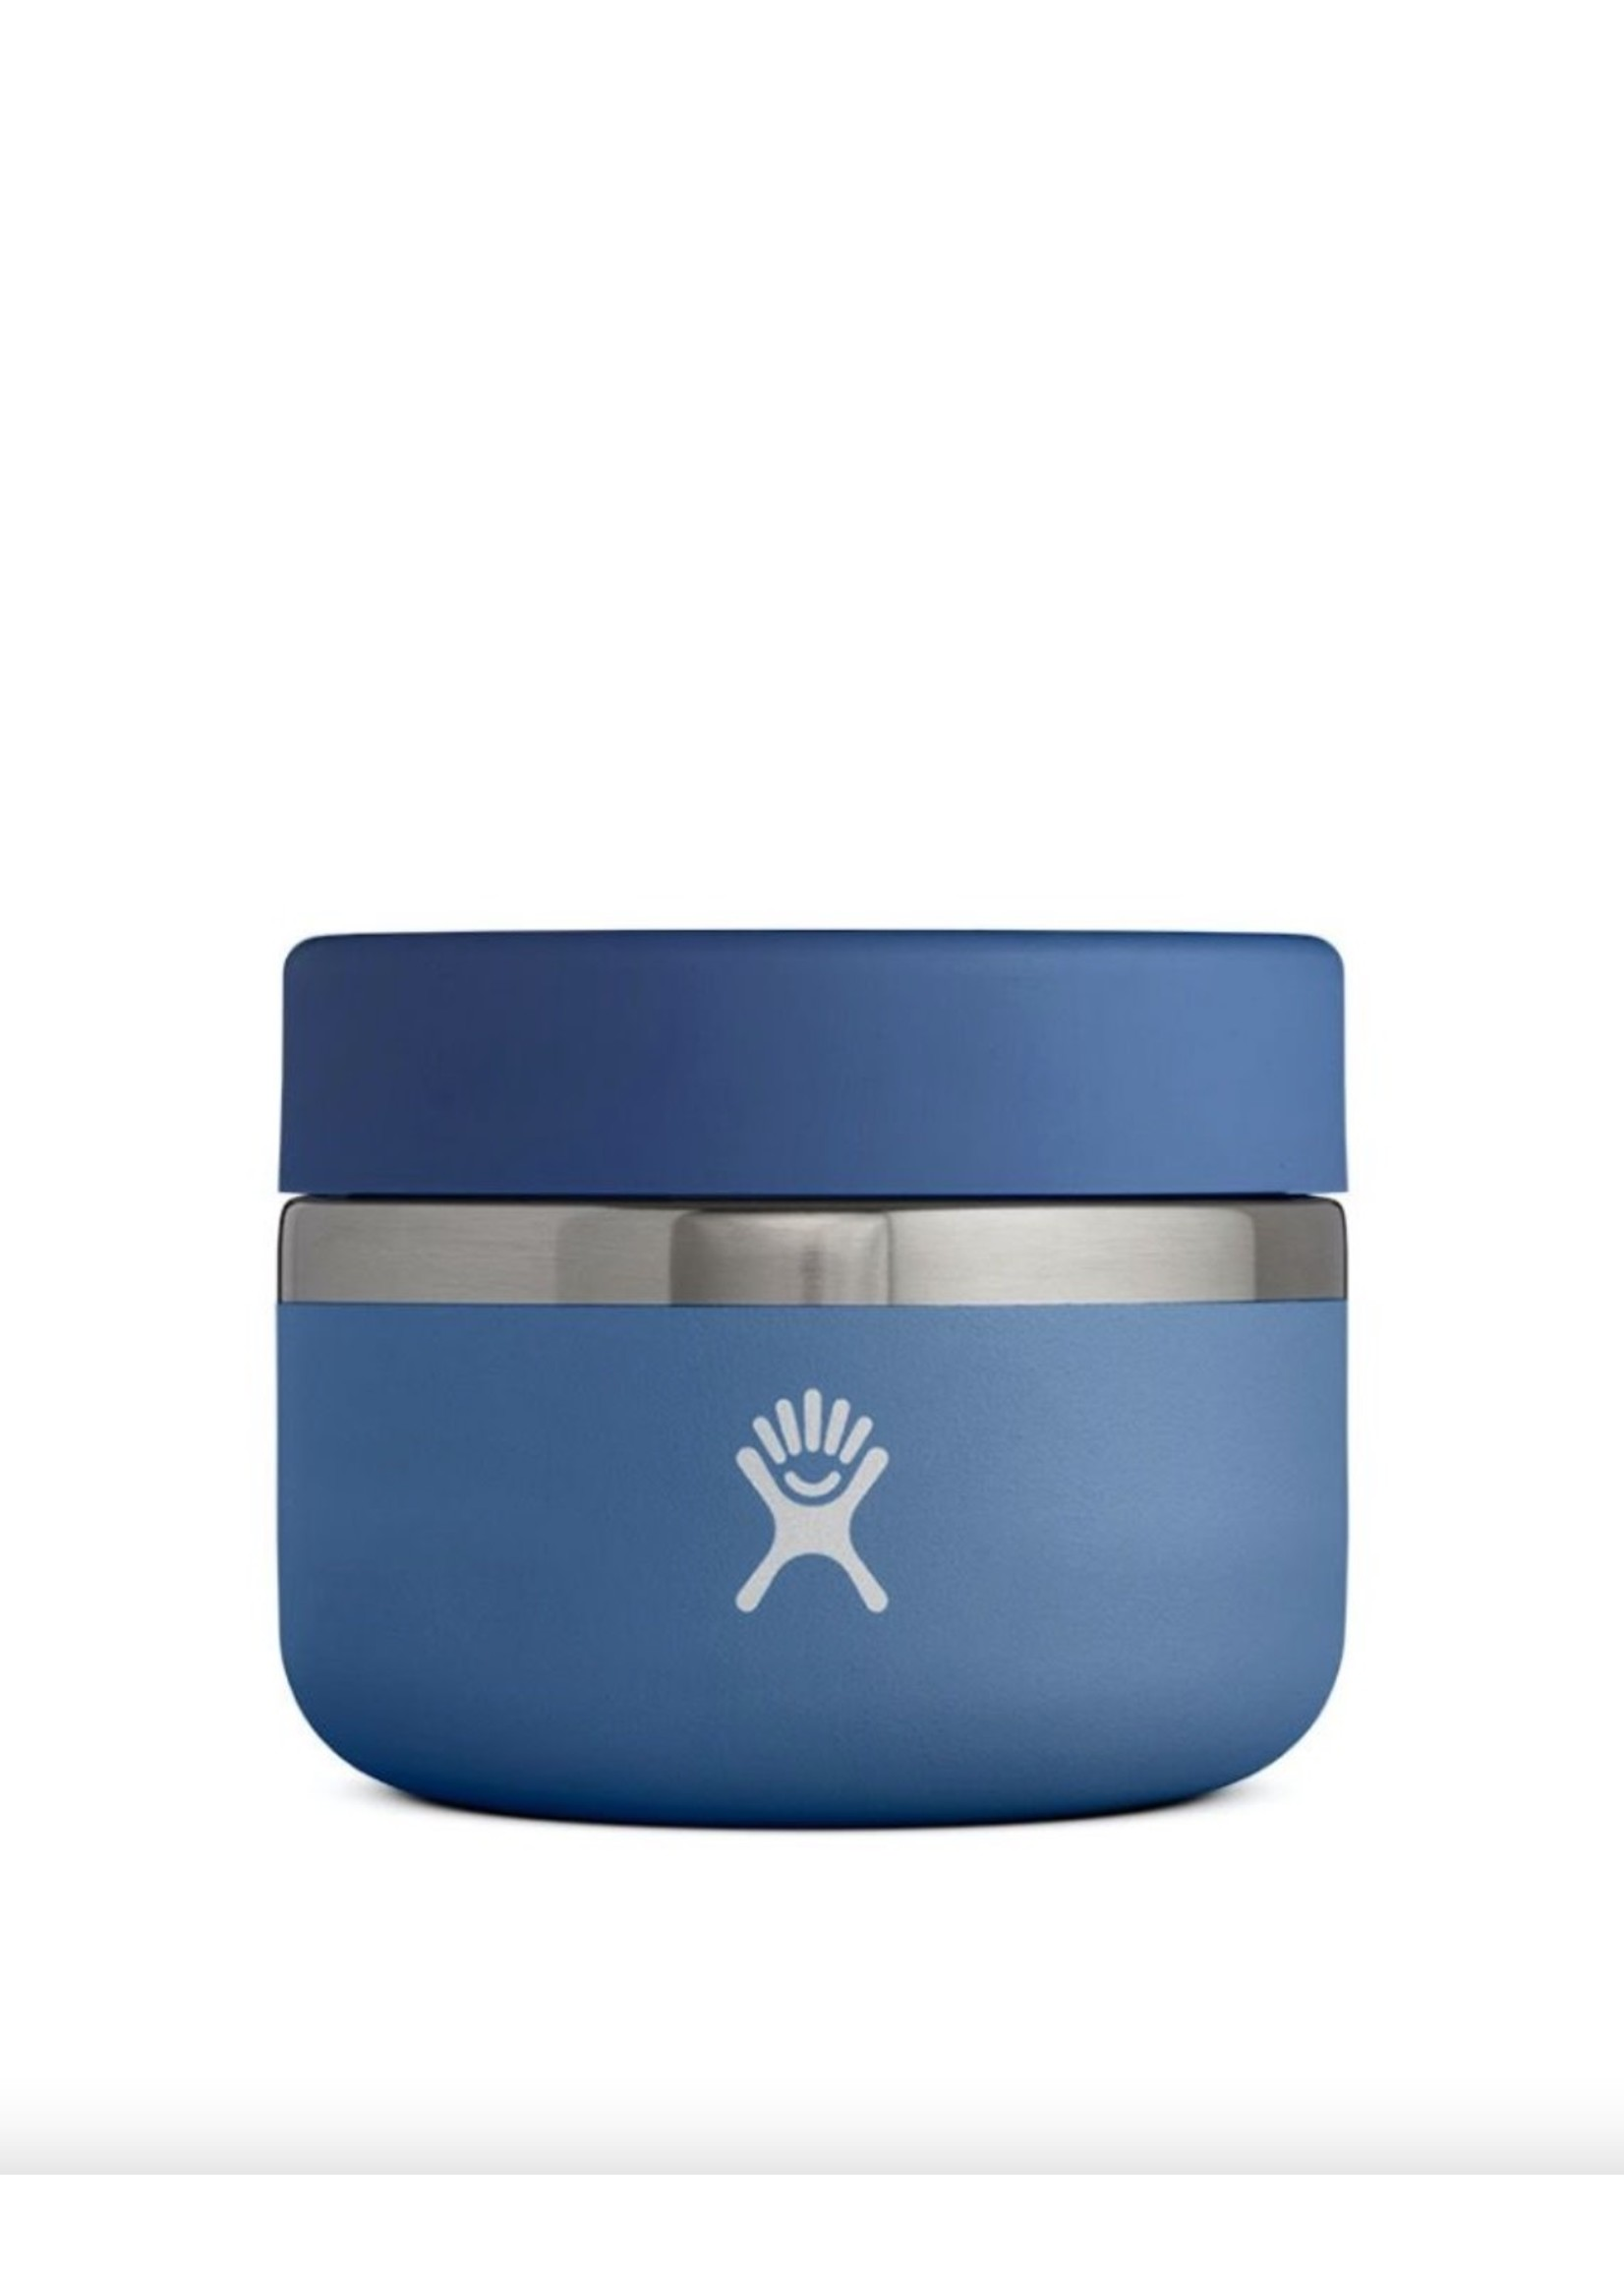 Hydro Flask Hydro Flask, 12oz Insulated Stainless Food Jar